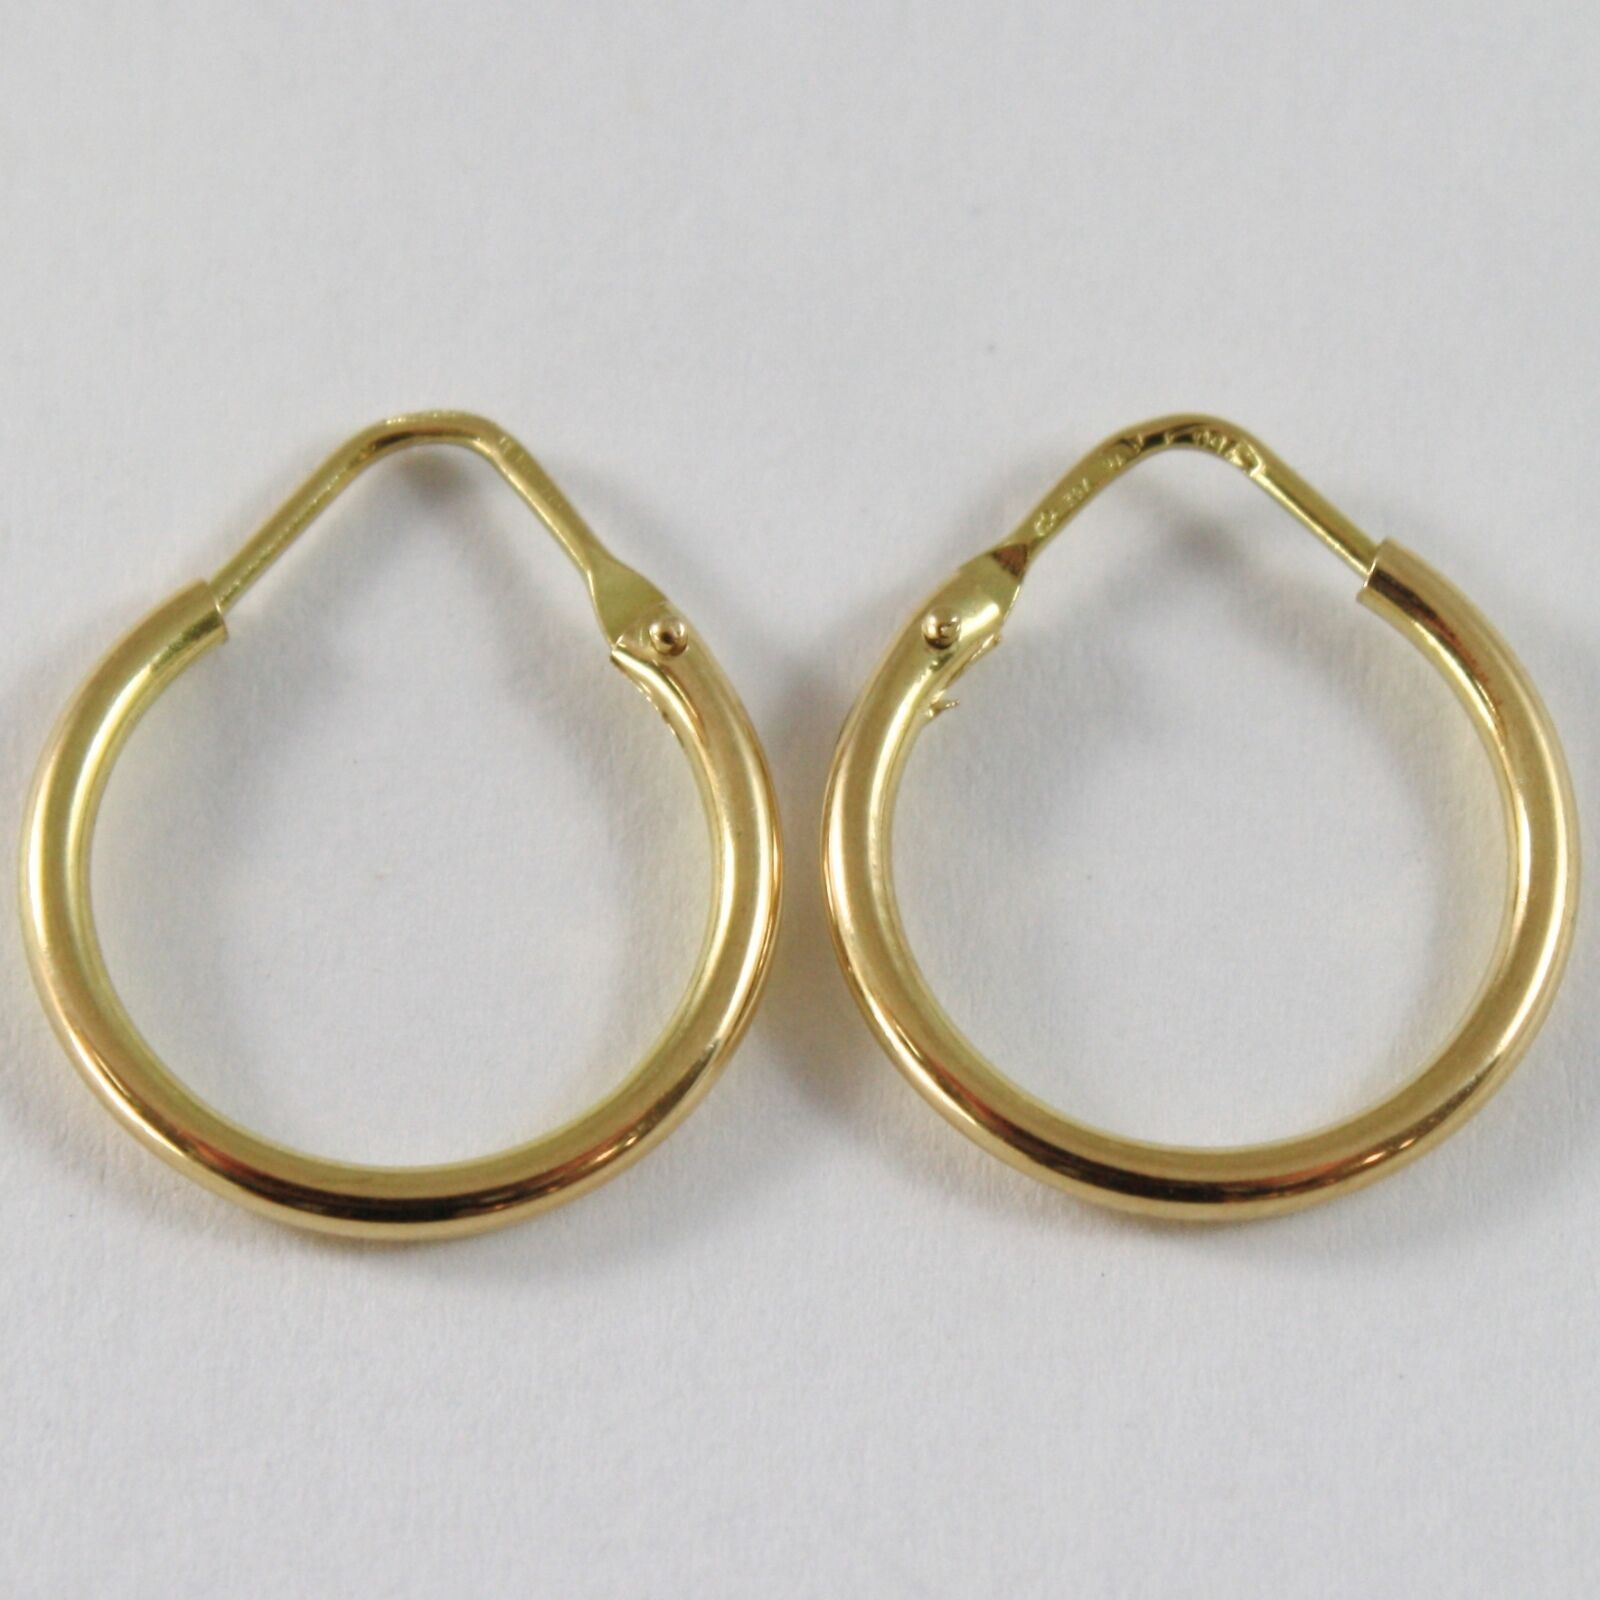 18K YELLOW GOLD ROUND CIRCLE EARRINGS DIAMETER 13 MM WIDTH 1.7 MM, MADE IN ITALY